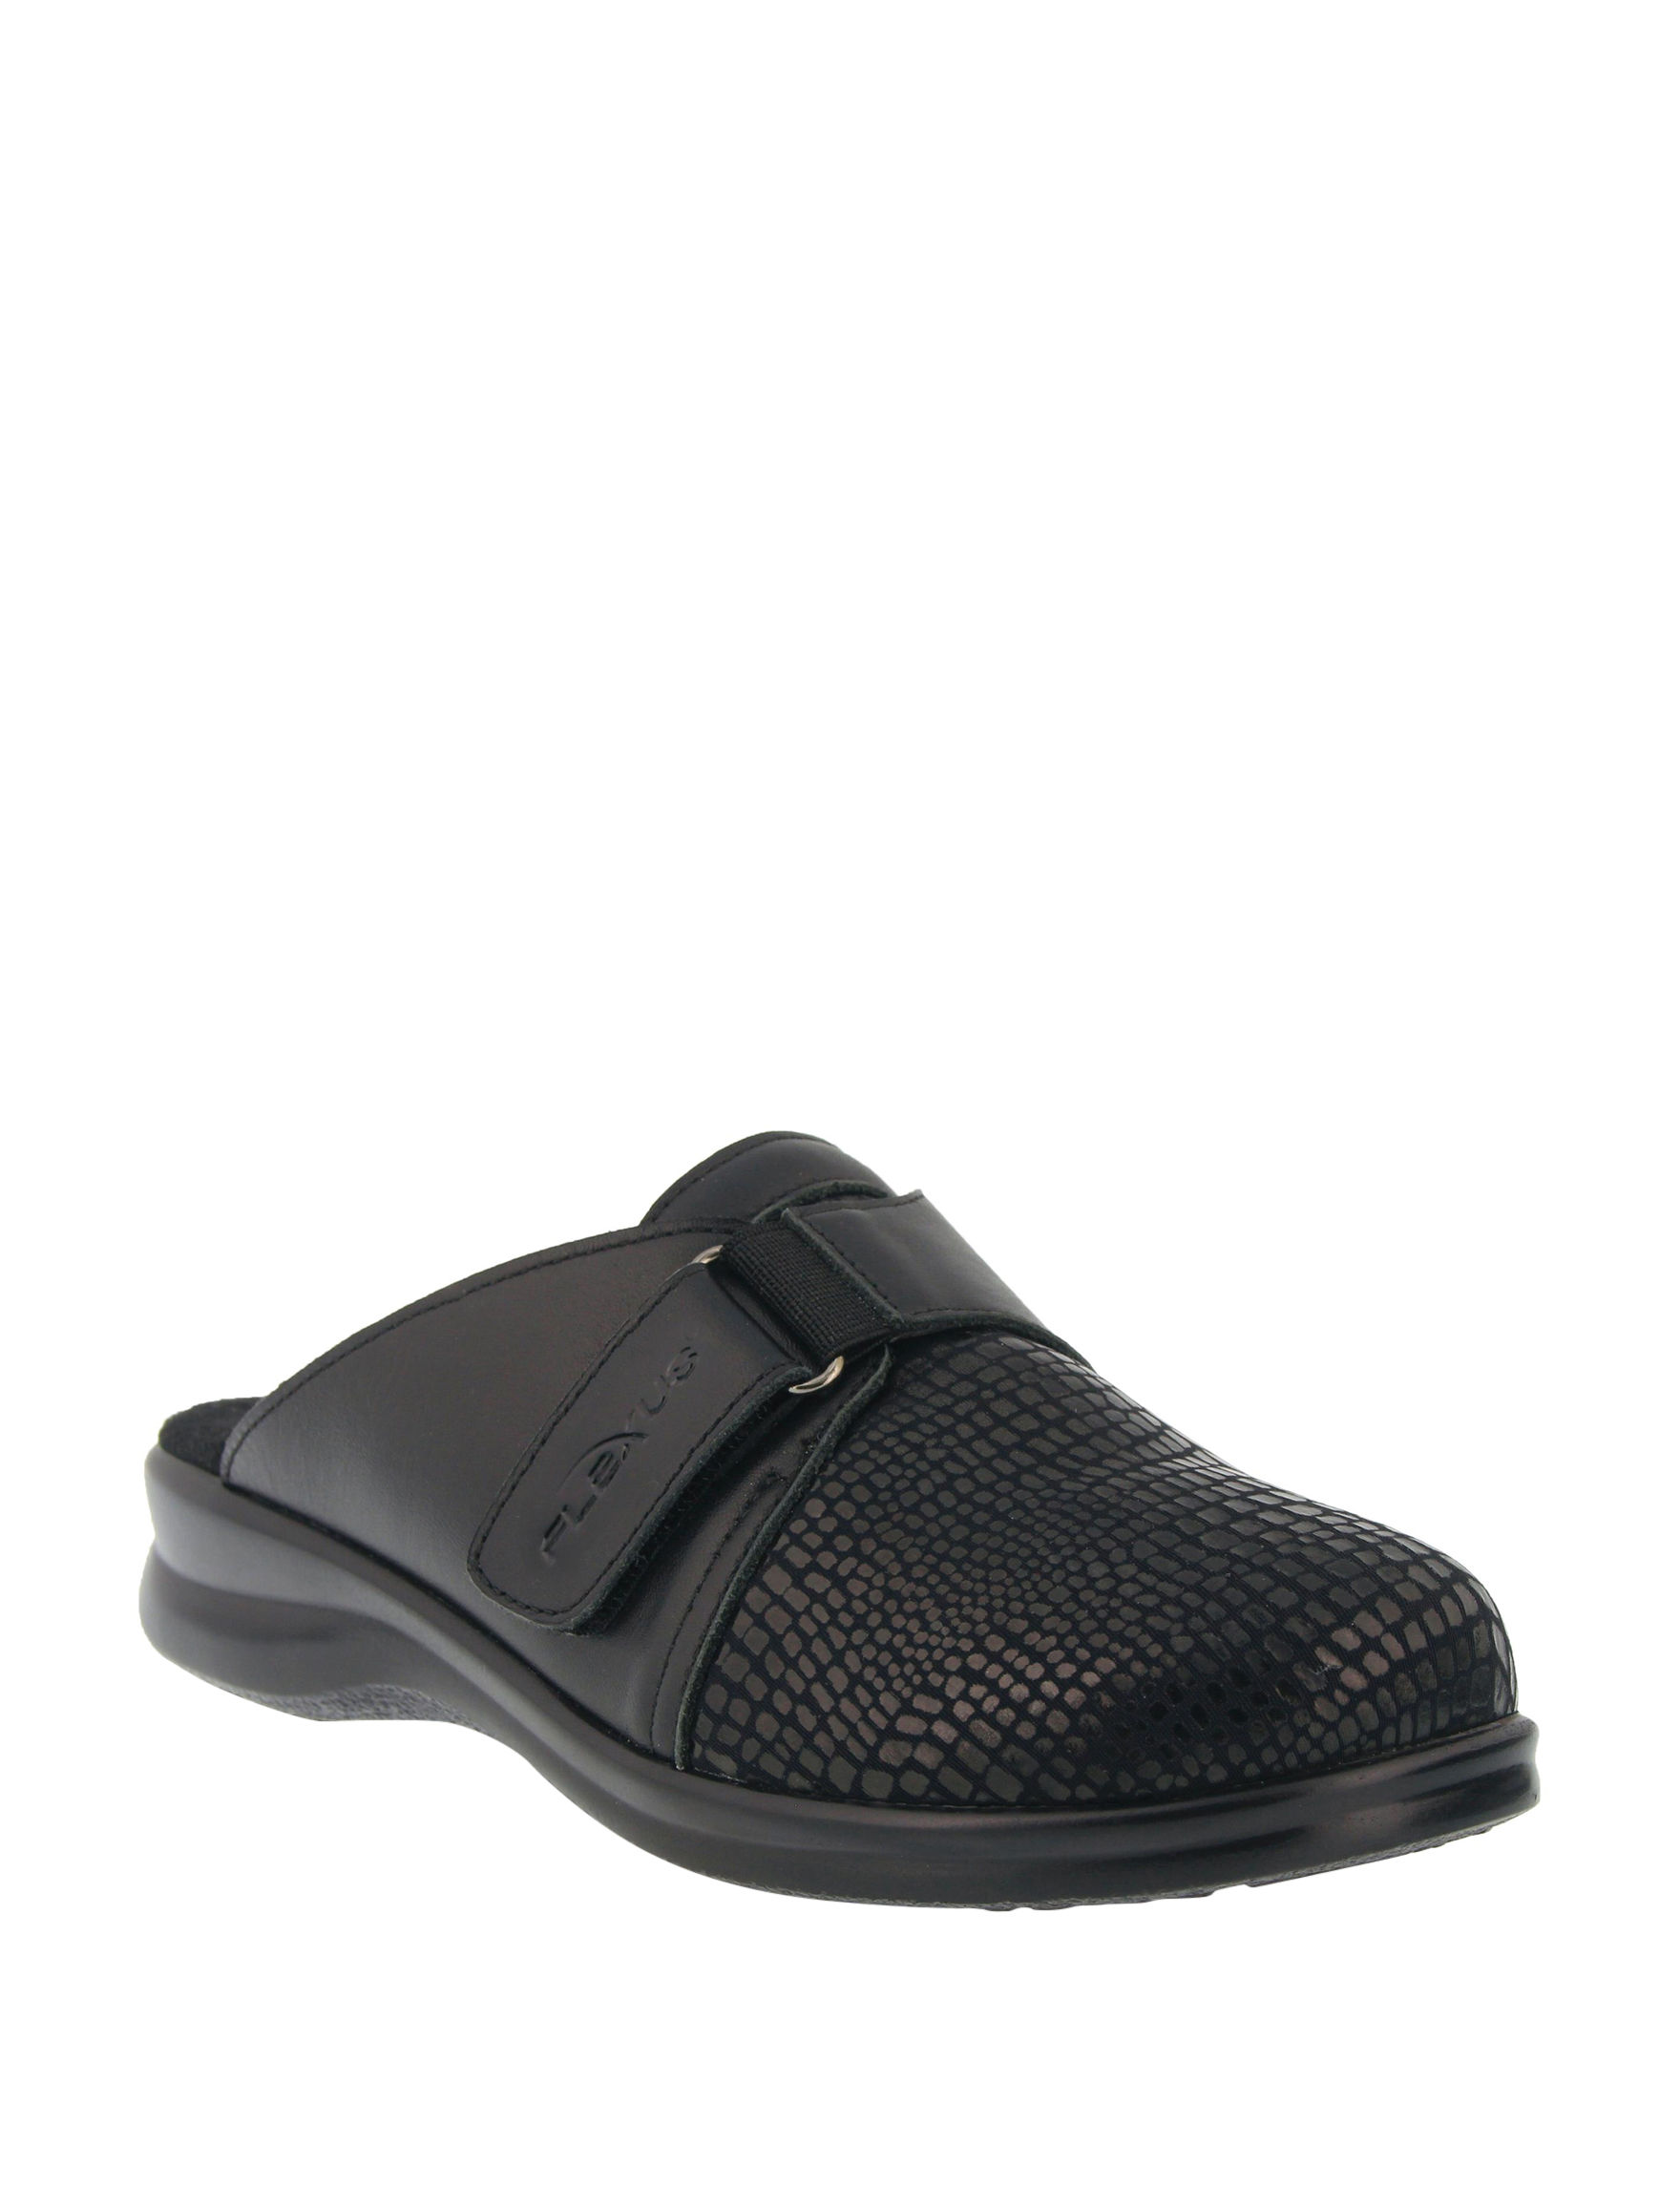 Flexus Black Clogs